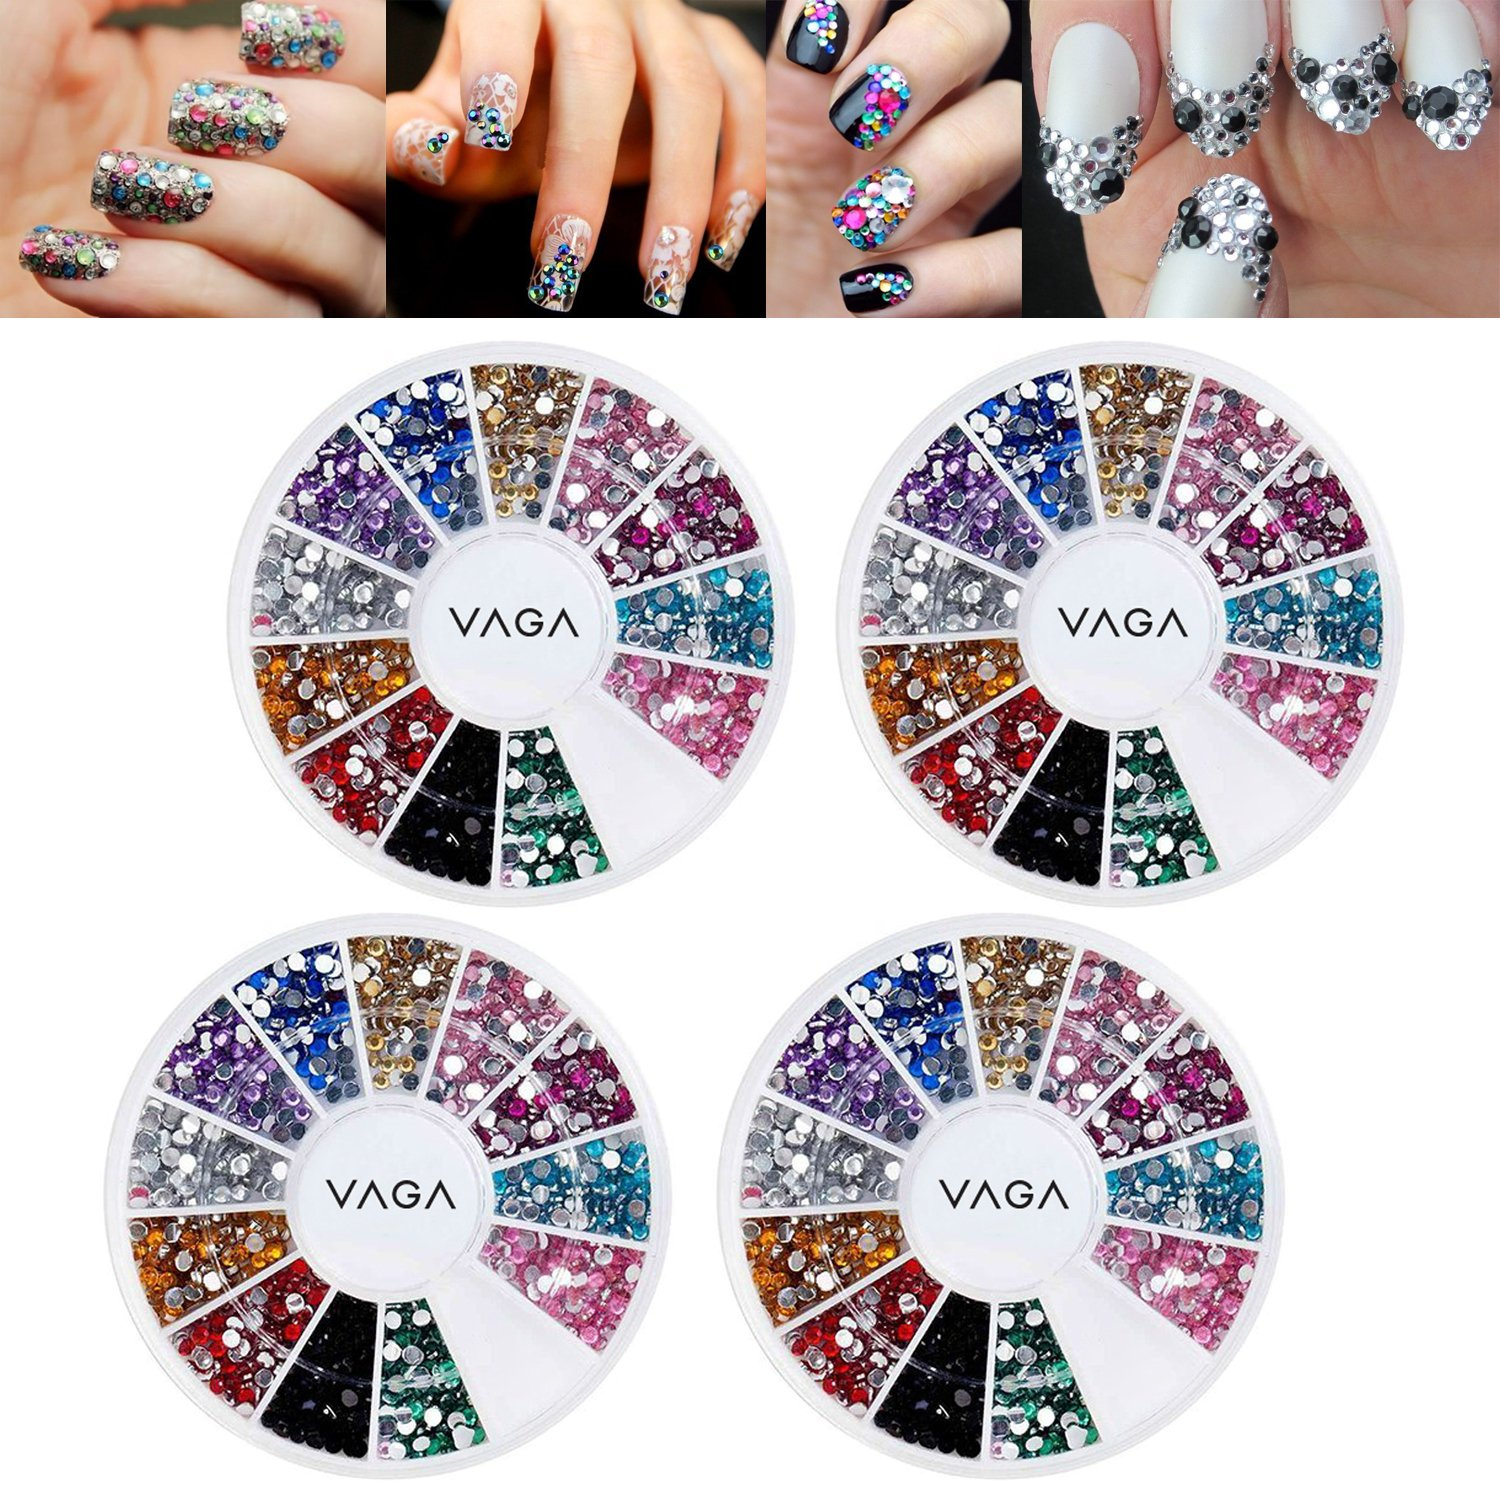 Amazing Value Set Kit of 4 High Quality Manicure 3D Nail Art Decorations Wheels With Rhinestones Gemstones Crystals Jewels In 12 Different Colors By VAGA